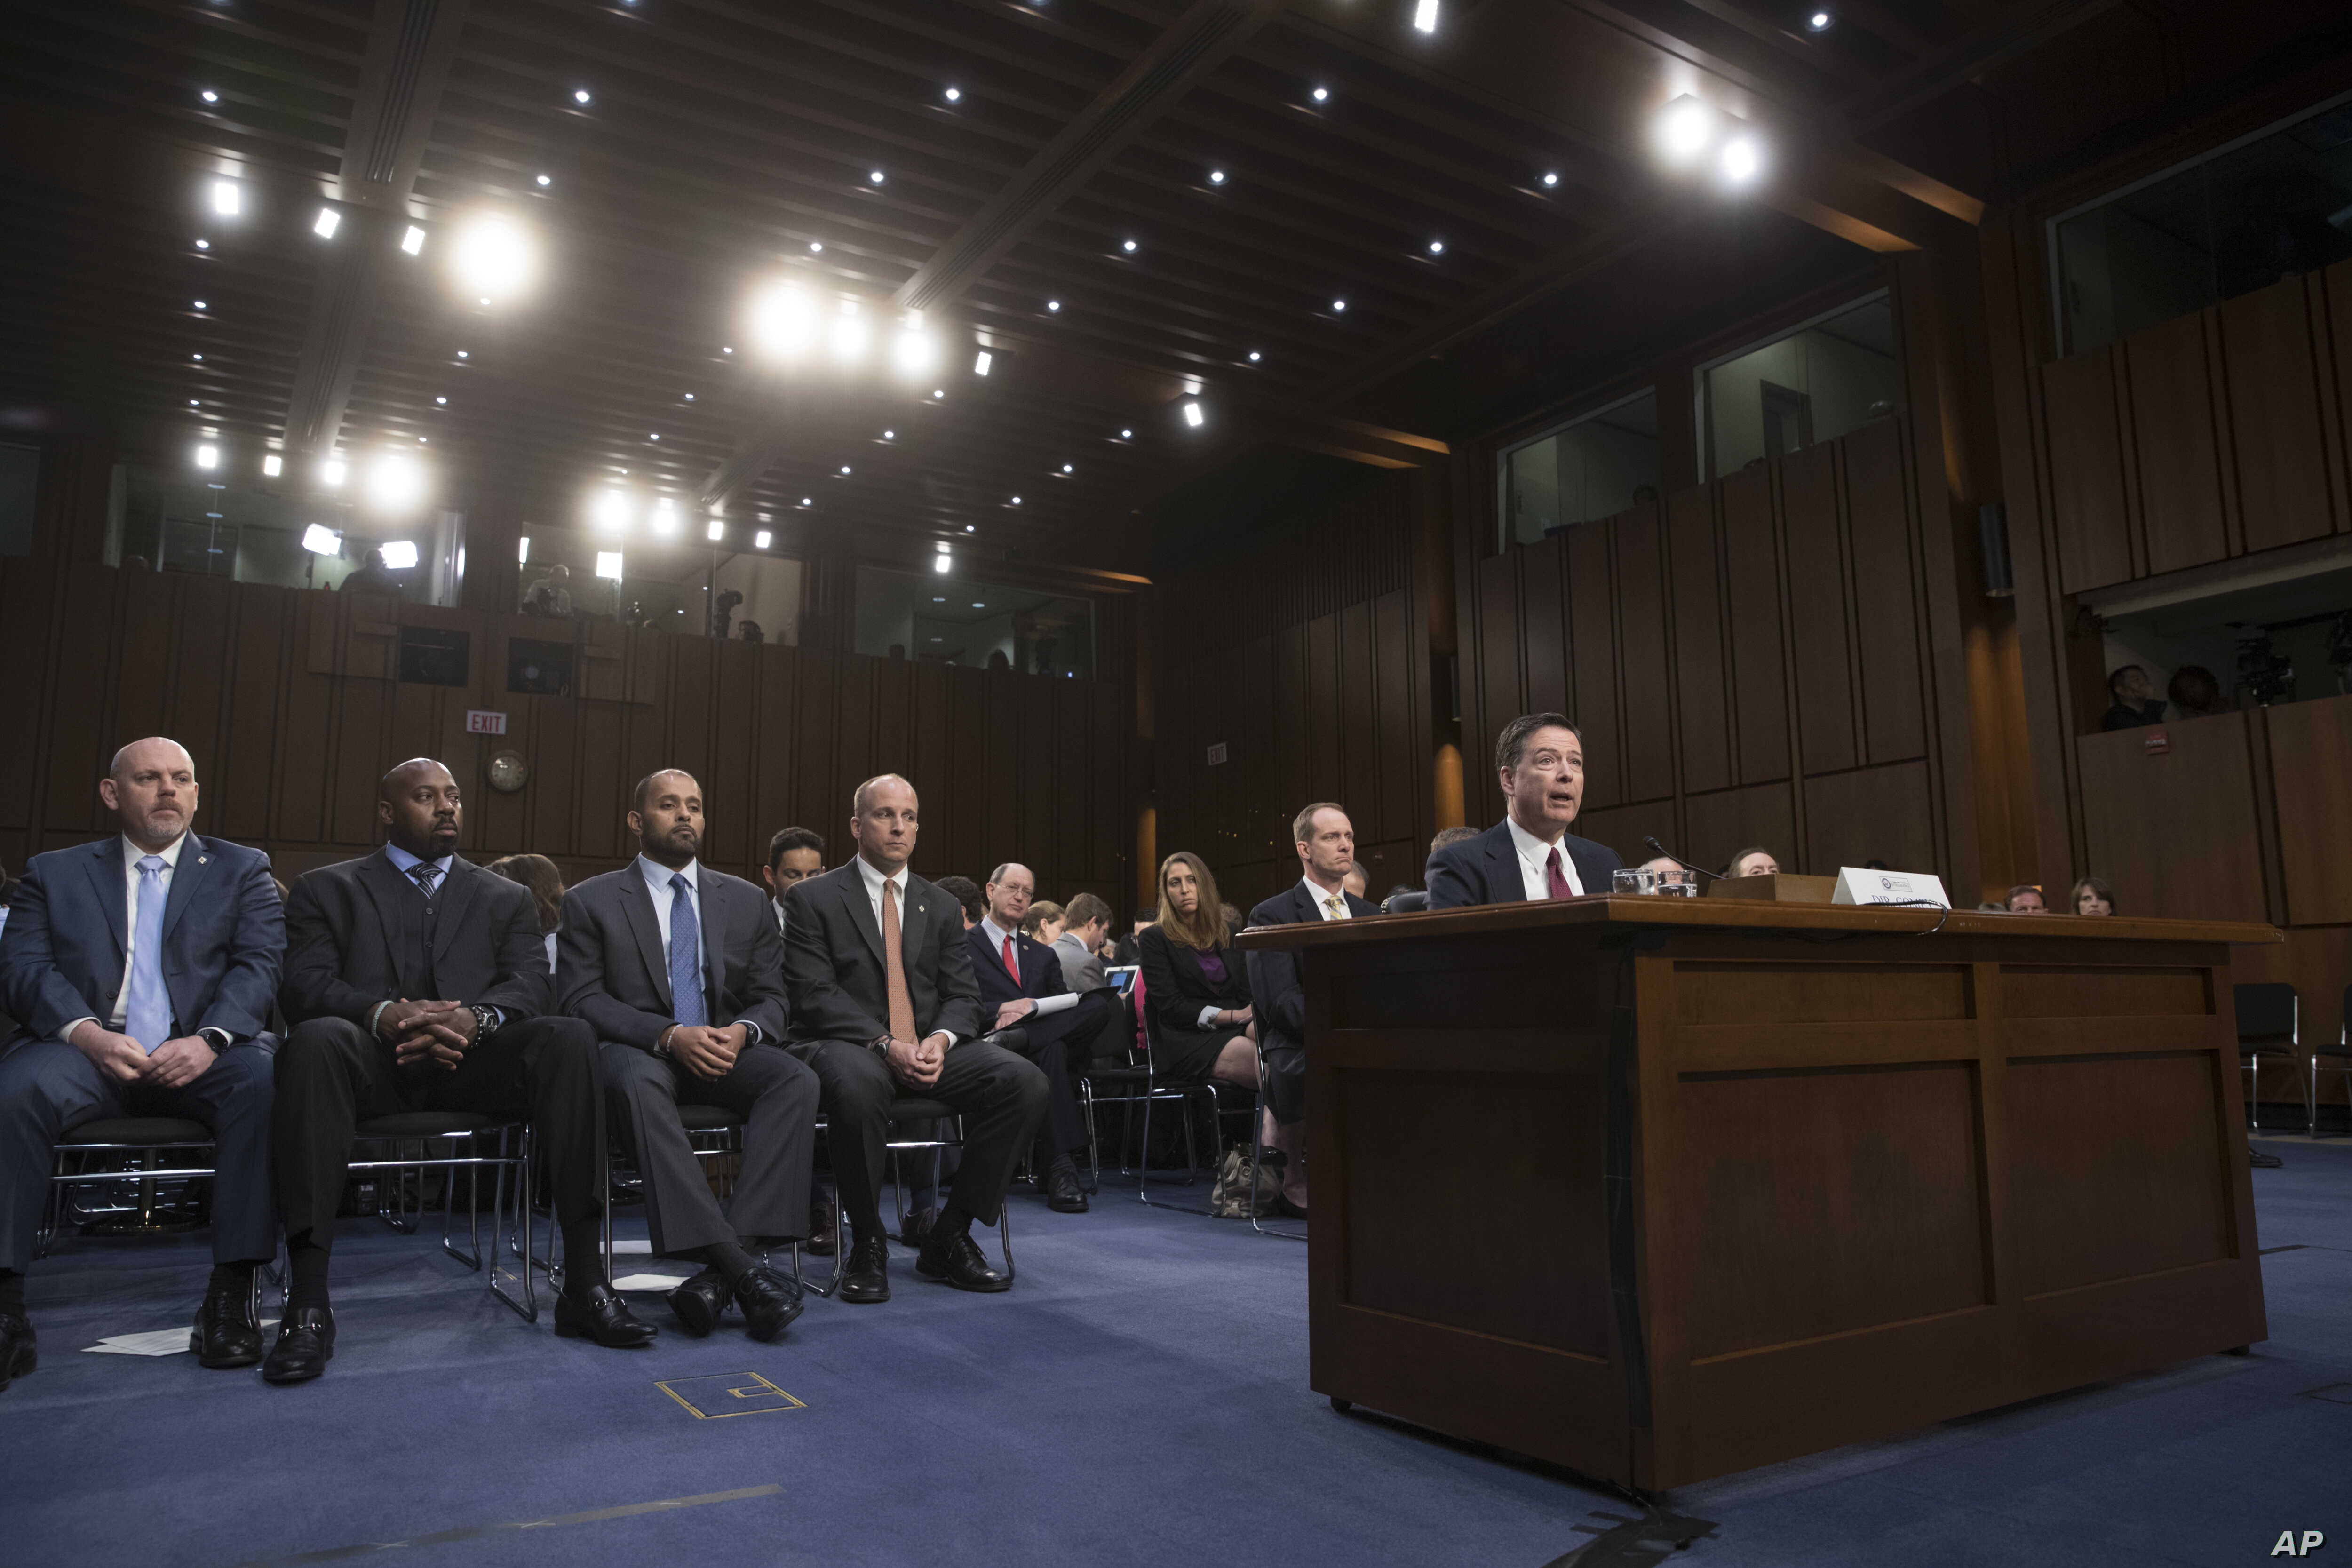 Former FBI director James Comey testifies before the Senate Select Committee on Intelligence, on Capitol Hill in Washington, June 8, 2017.